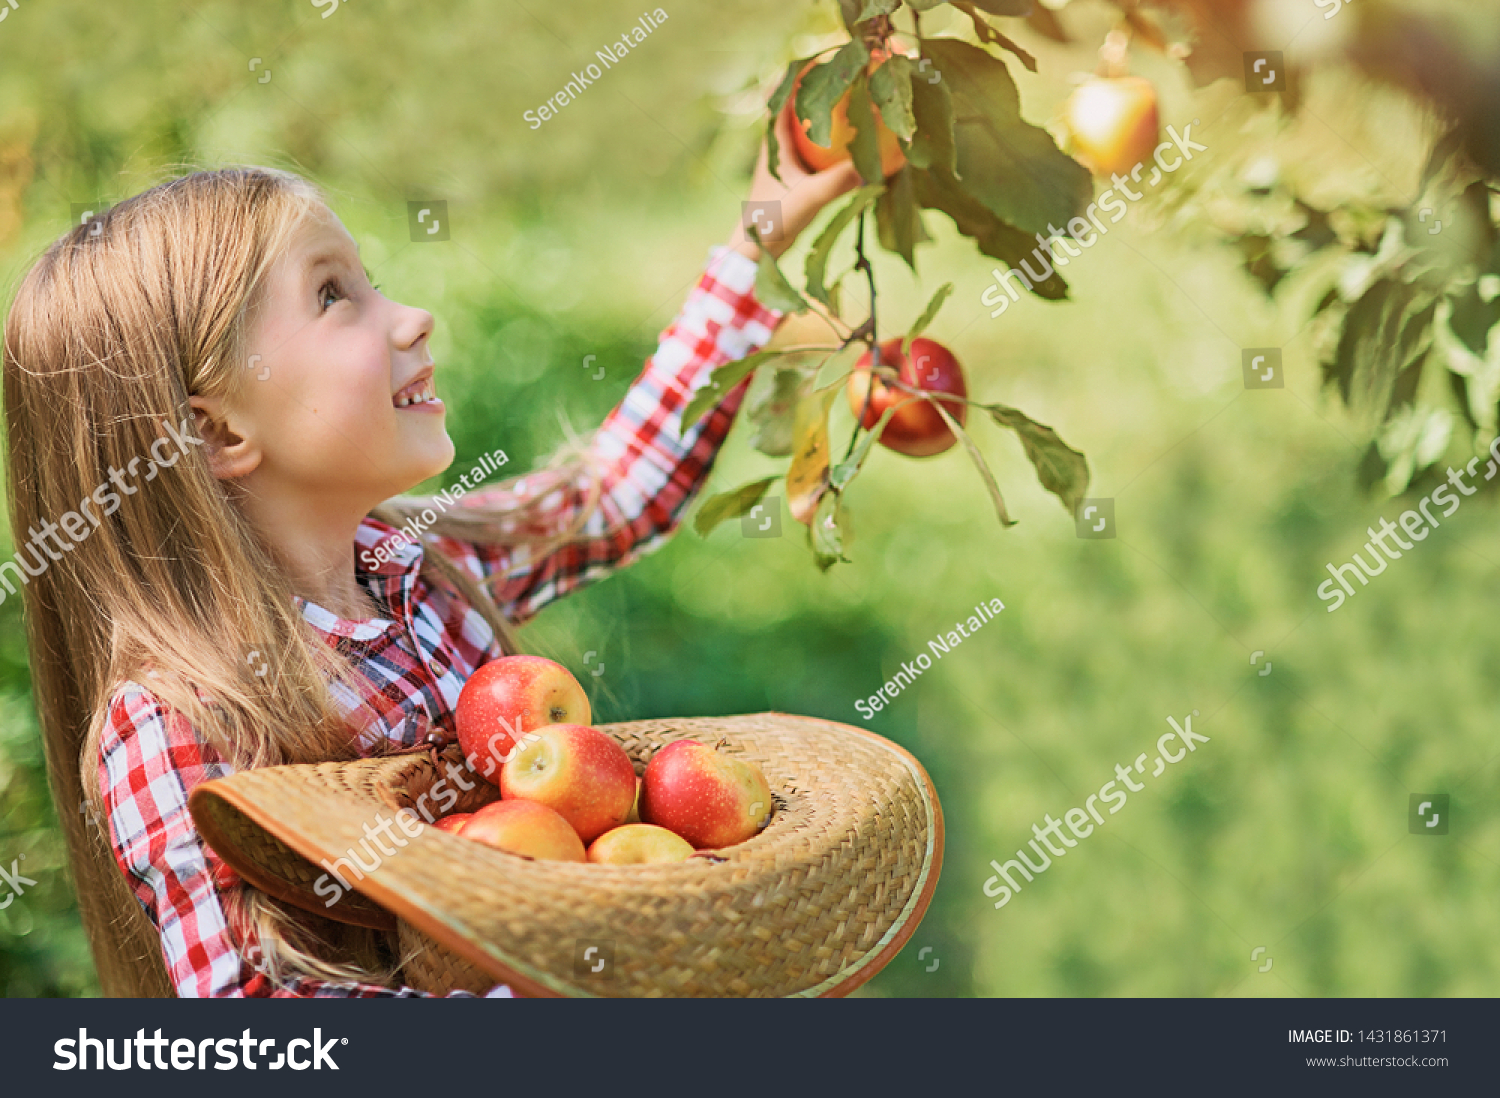 Girl with Apple in the Apple Orchard. Beautiful Girl Eating Organic Apple in the Orchard. Harvest Concept. Garden, Toddler eating fruits at fall harvest. Apple picking. #1431861371